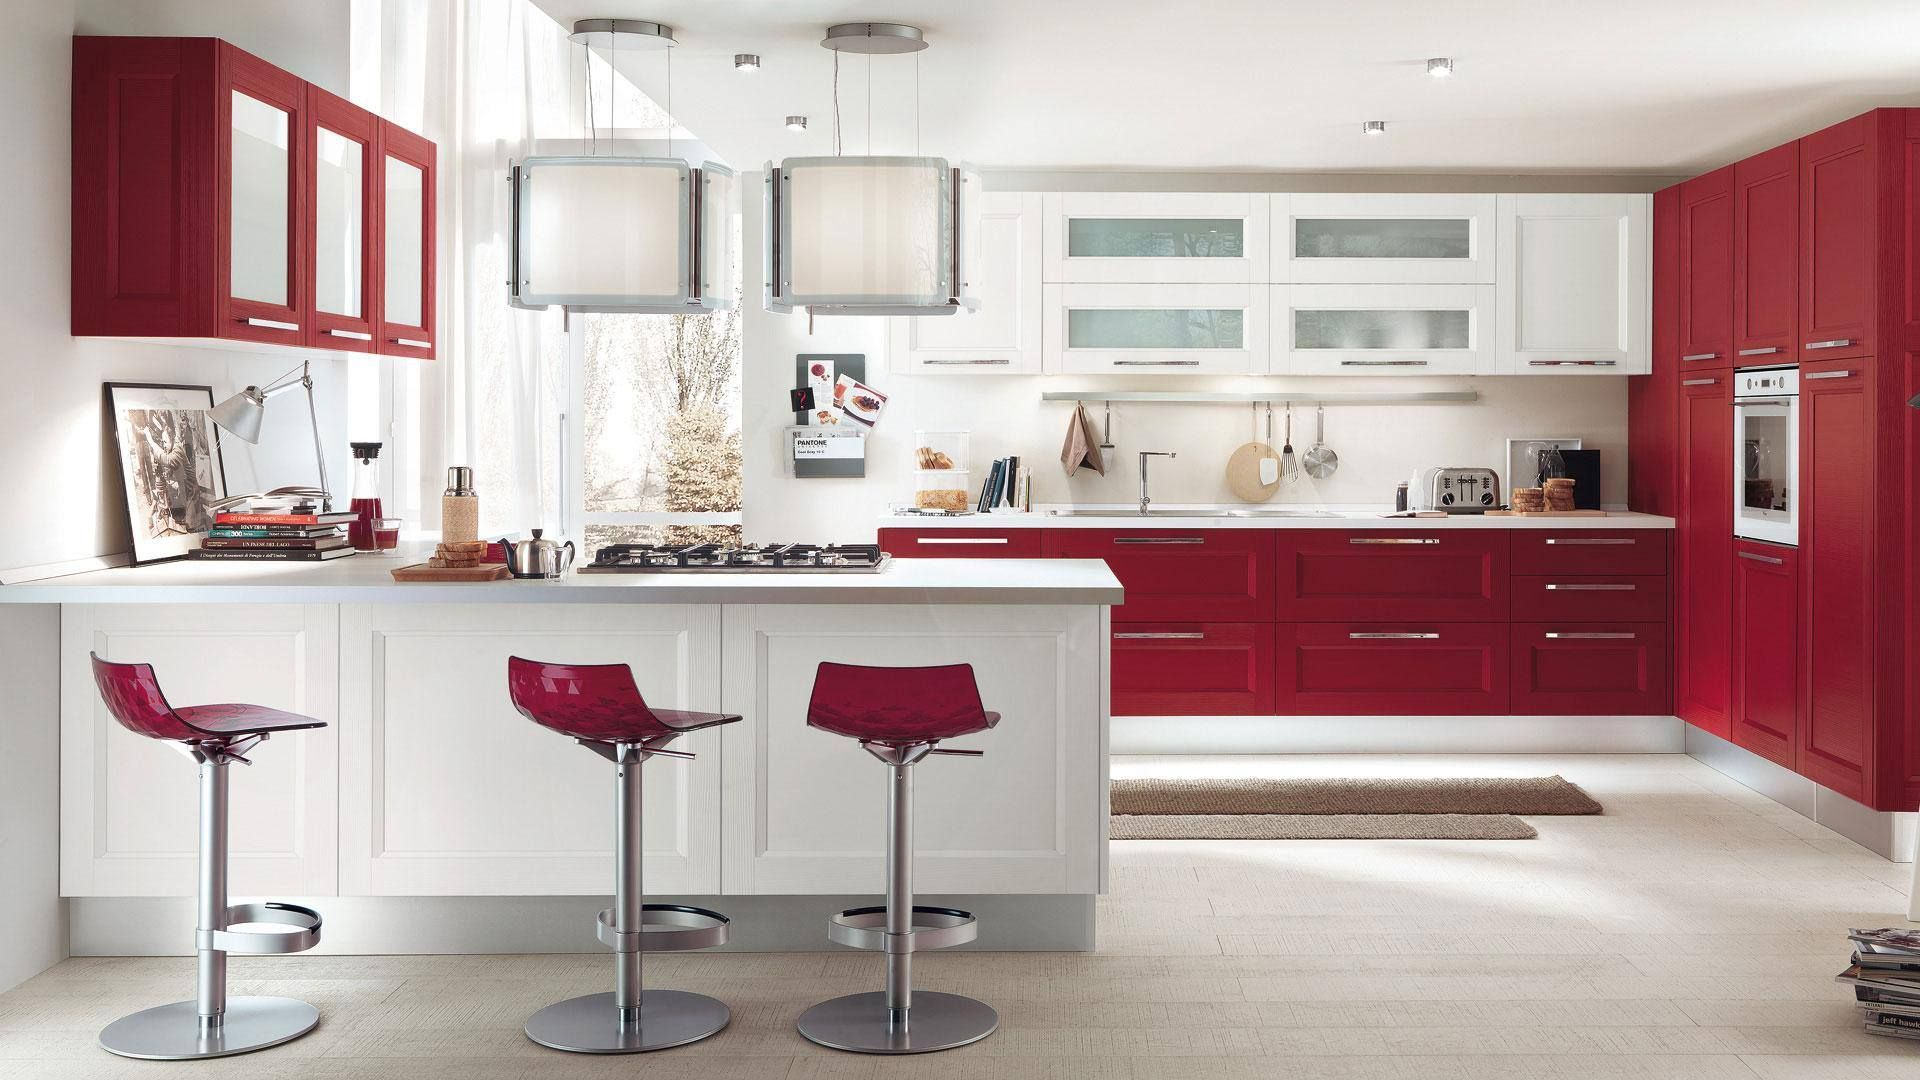 Kreate Cube Is Online Directory For Best Affordable Architects Interior Designers Suppliers Contractors In D Modern Kitchen Stylish Kitchen Kitchen Design